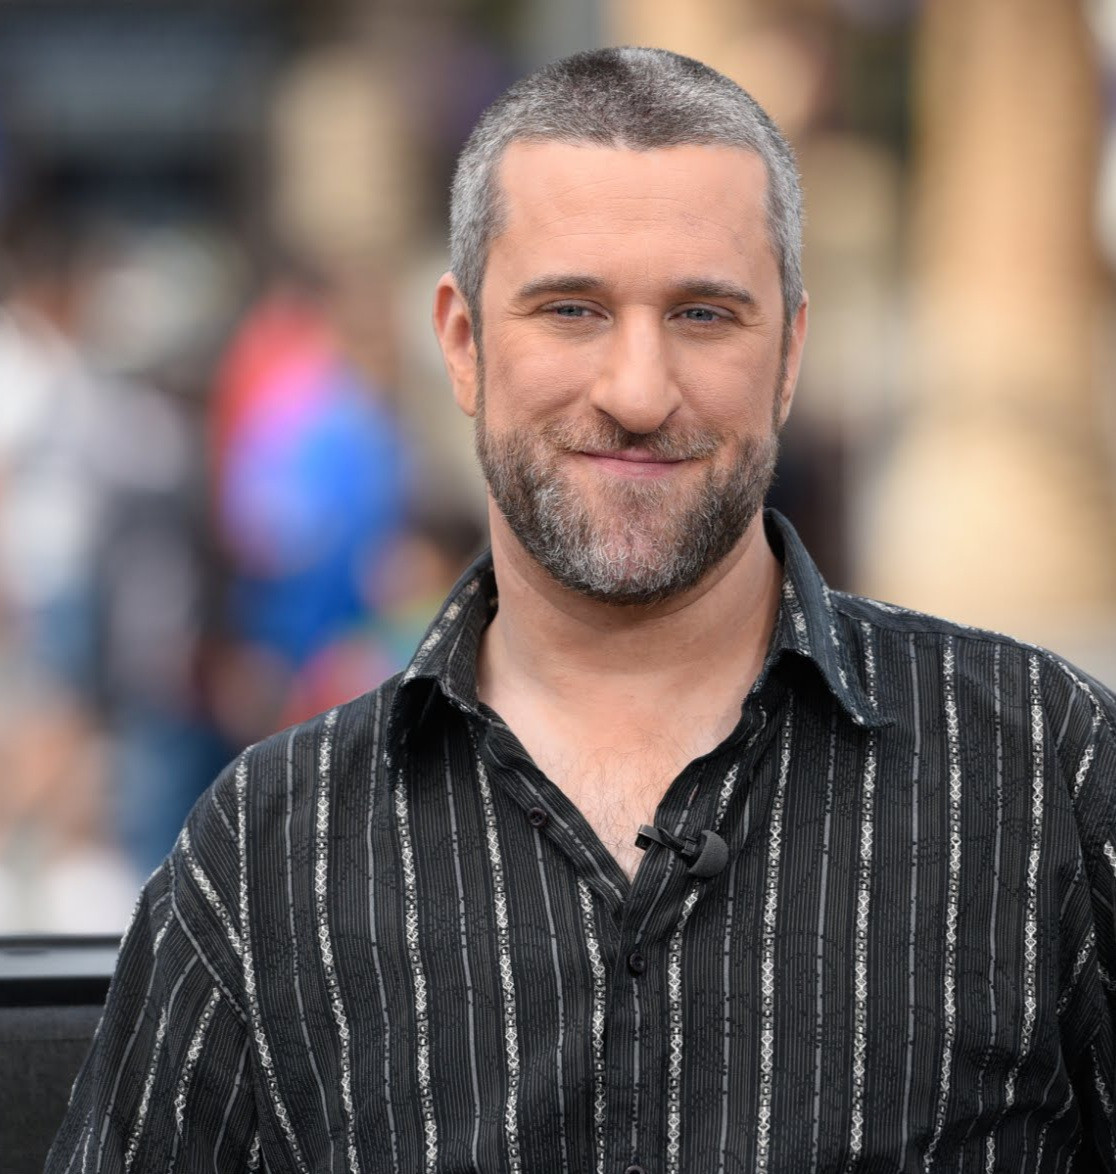 Saved by the Bell star, Dustin Diamond completes first round of chemotherapy in stage 4 cancer battle as further tests reveals he has stage 4 small cell carcinoma